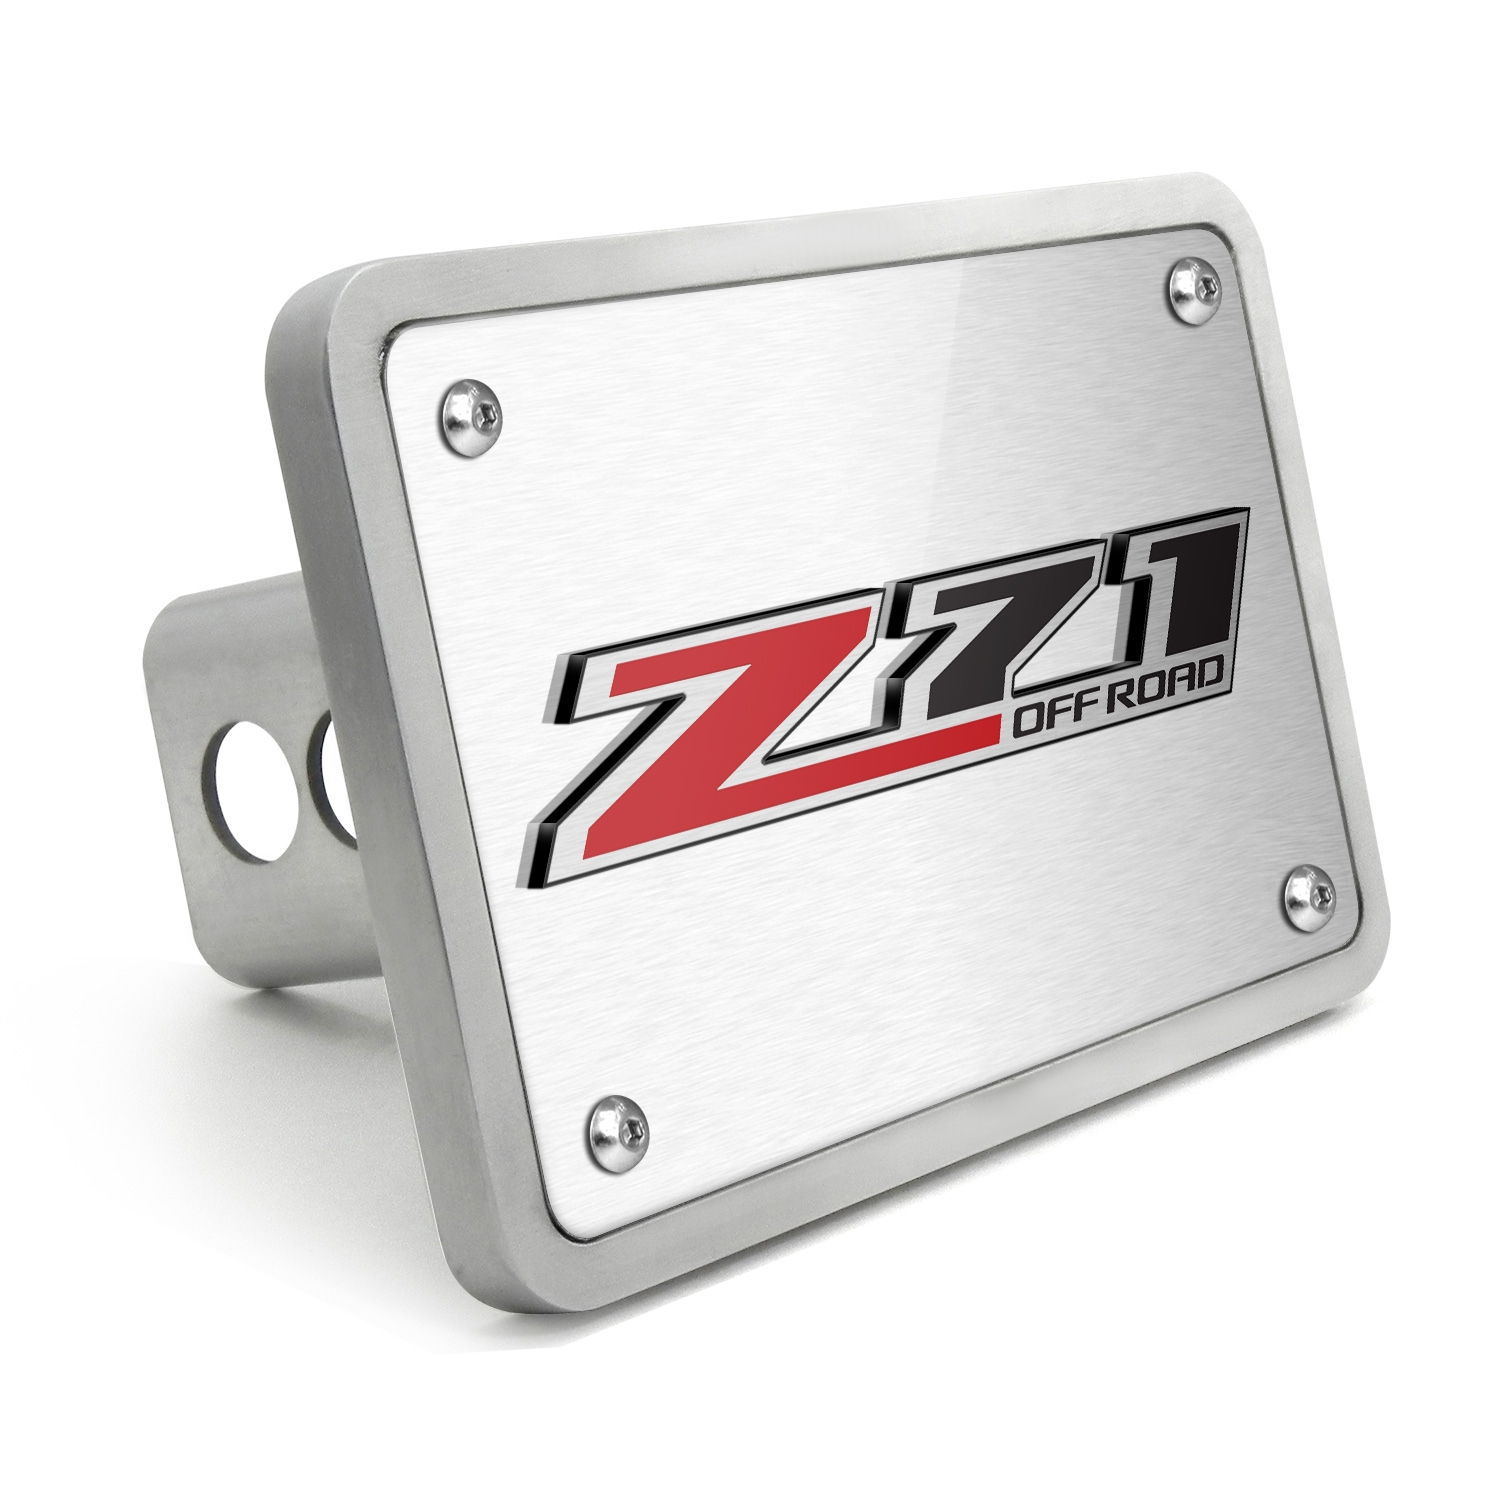 Chevrolet Silverado Z71 Off Road 3D Logo Brush Billet Aluminum 2 inch Tow Hitch Cover